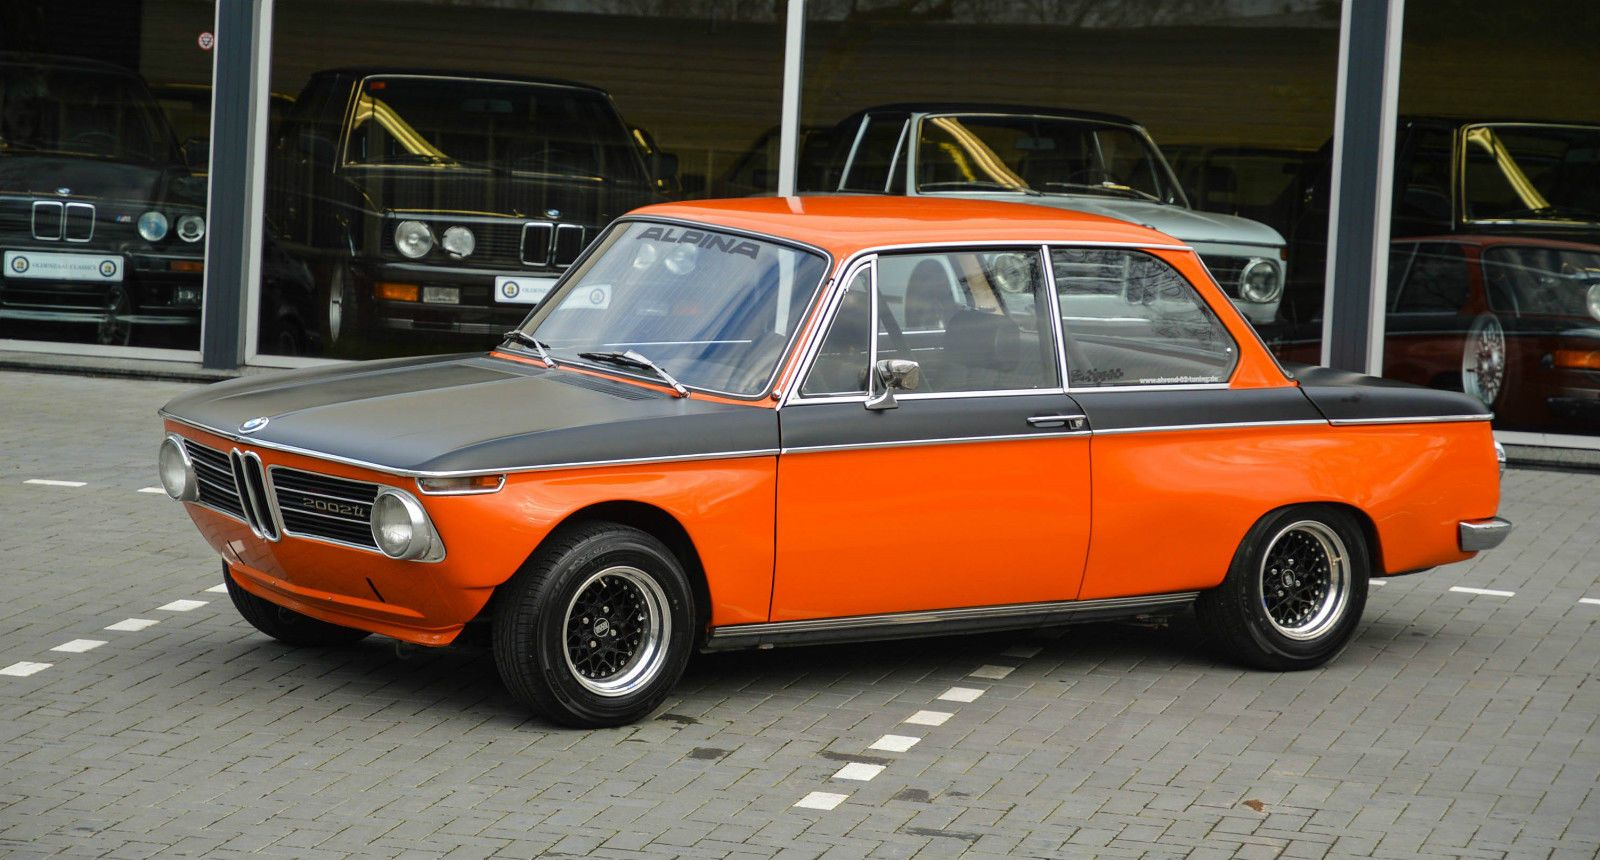 1972 BMW 2002 Alpina | Tuning cars for sale | Pinterest | Bmw 2002 ...